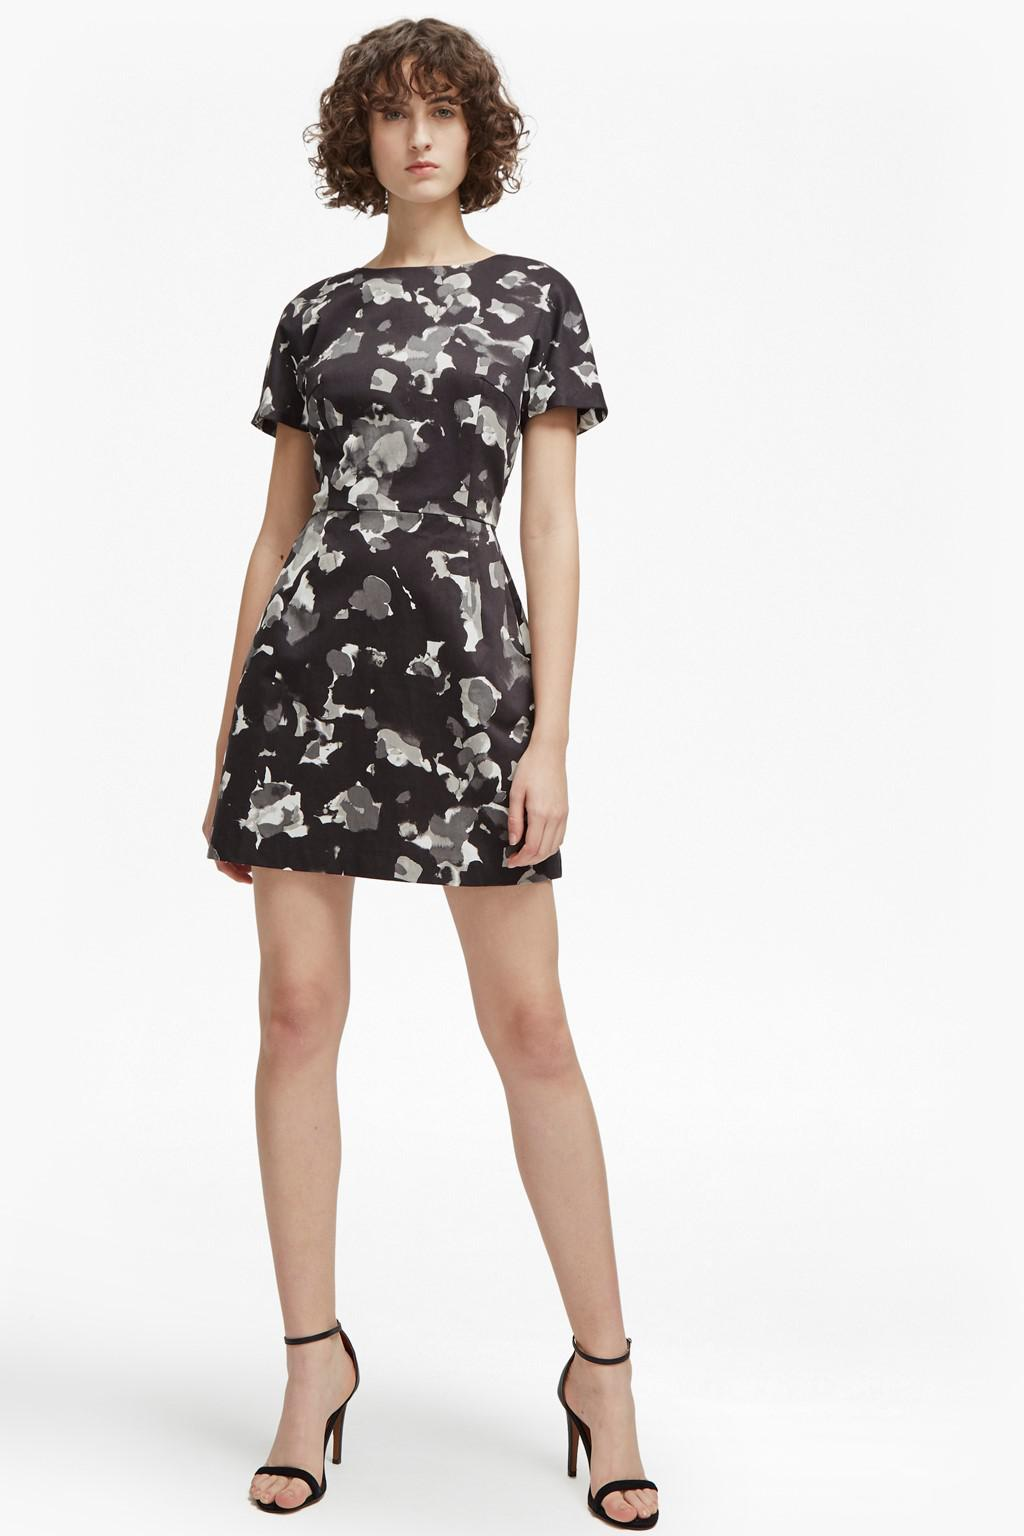 Lyst - French Connection Balla Camo Dress in Black